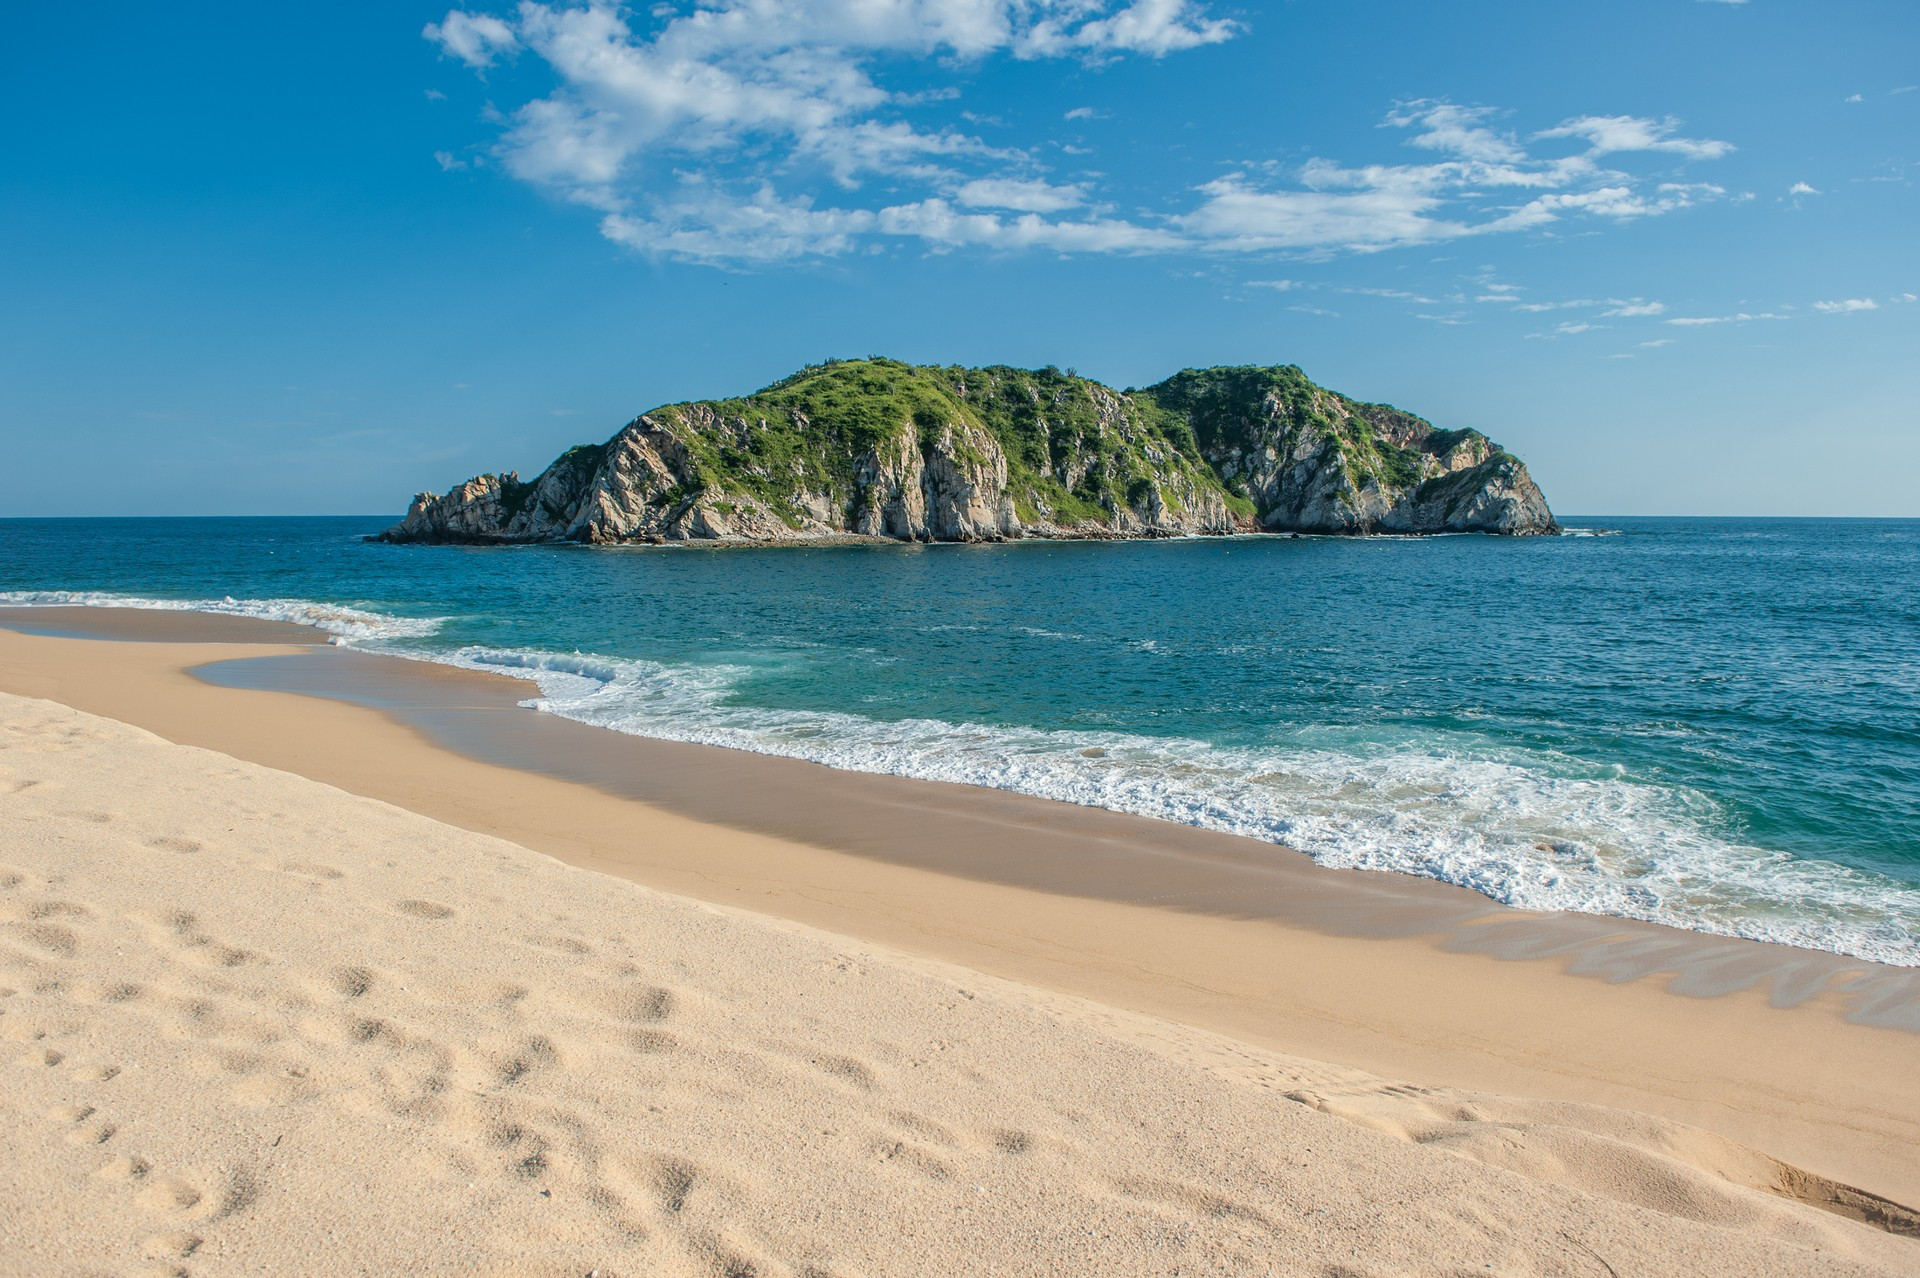 The white sand and turquoise water of Huatulco Beach in Mexico